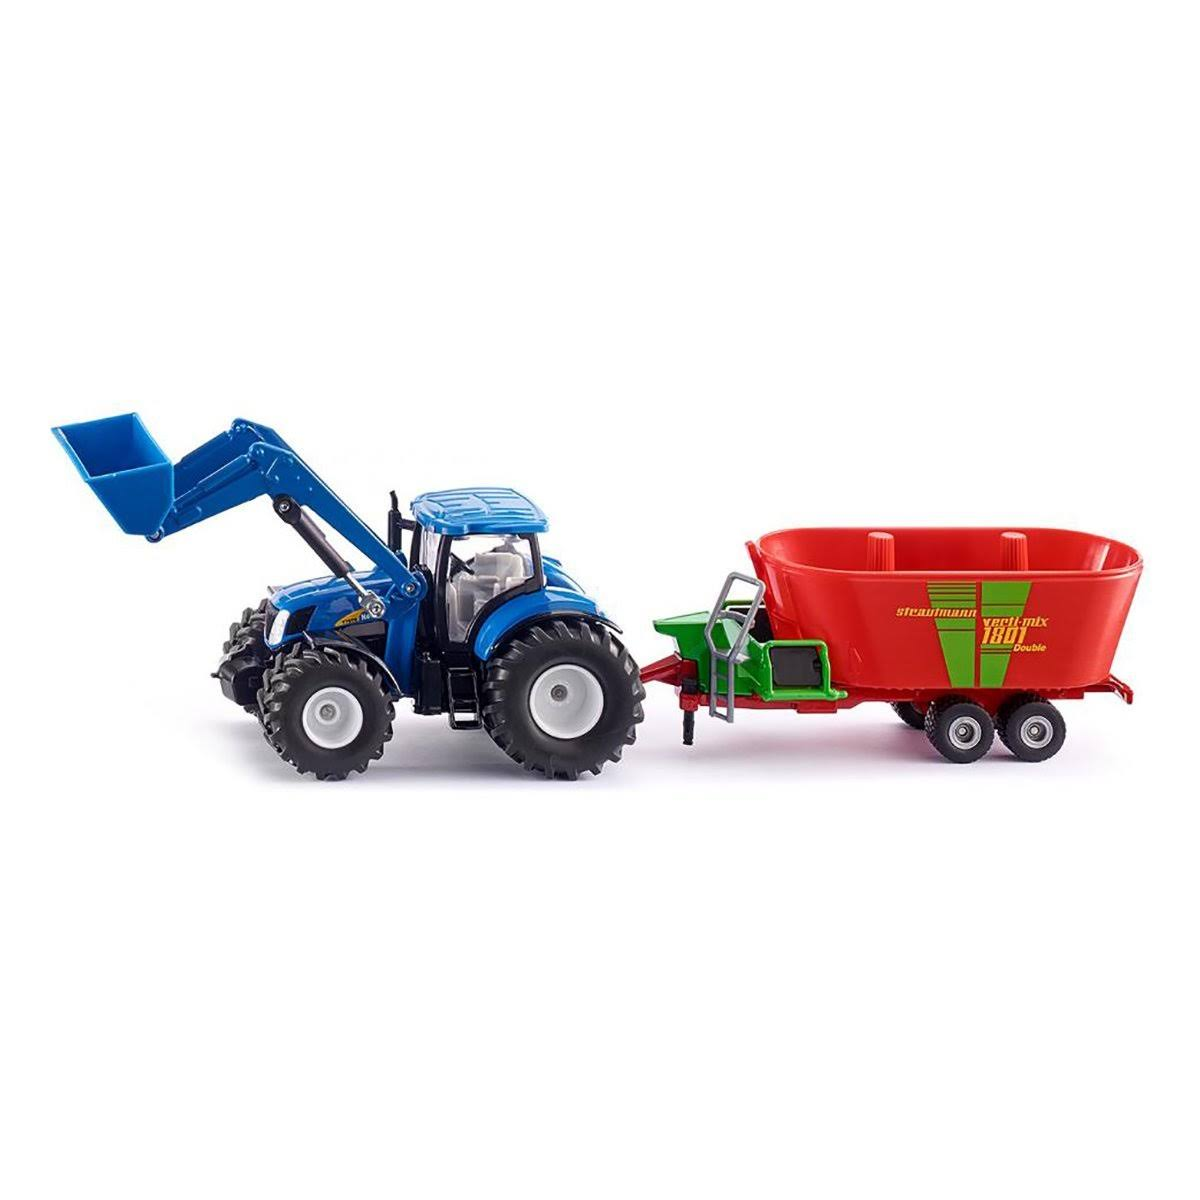 Siku New Holland Tractor Model Toy - with Front Loader